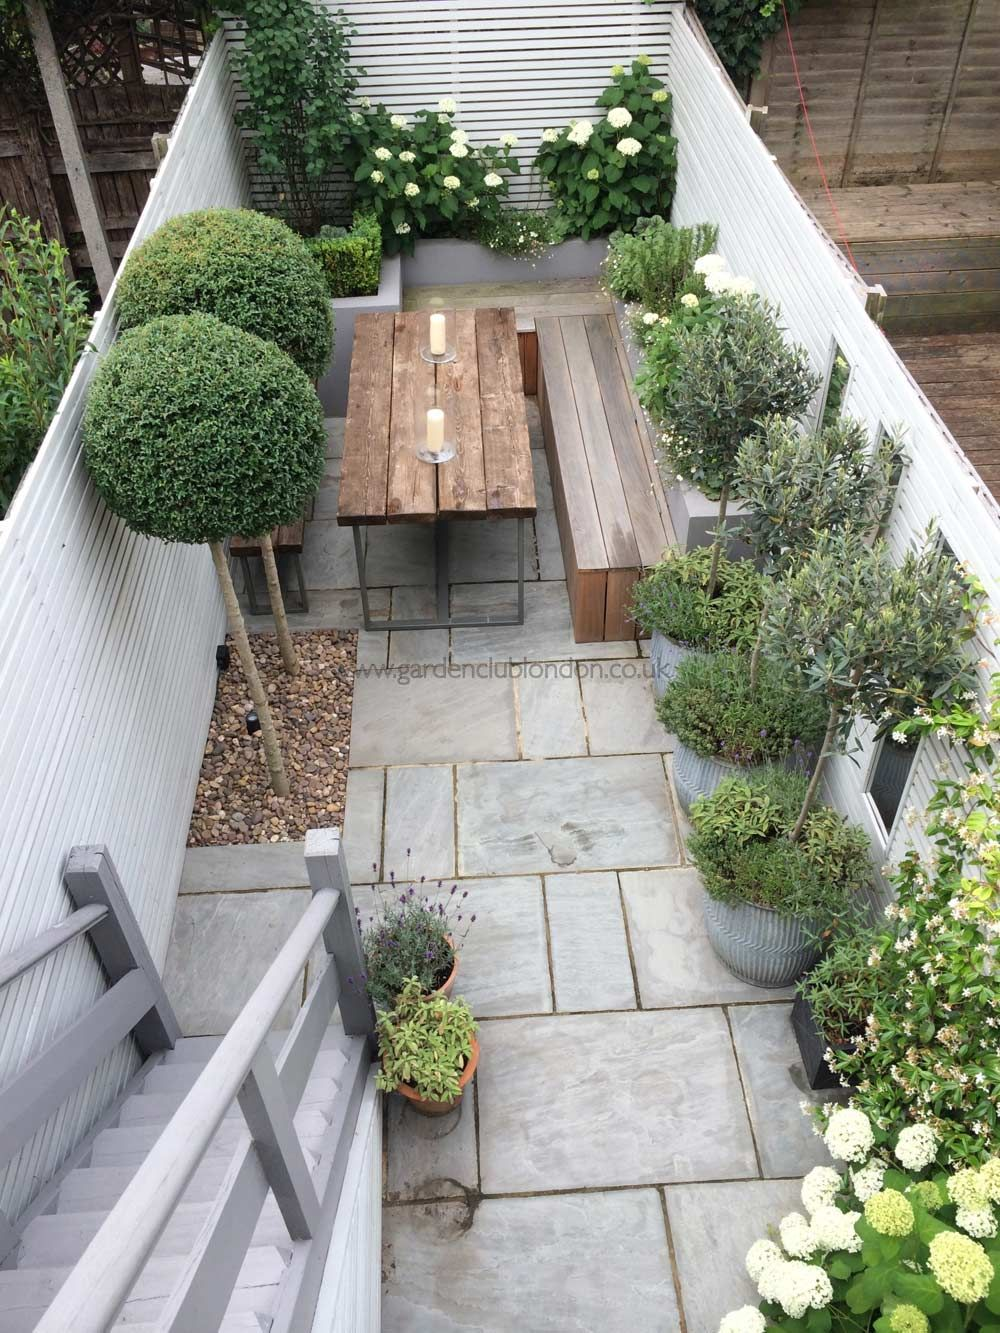 slim rear contemporary garden design london - Small Garden Design